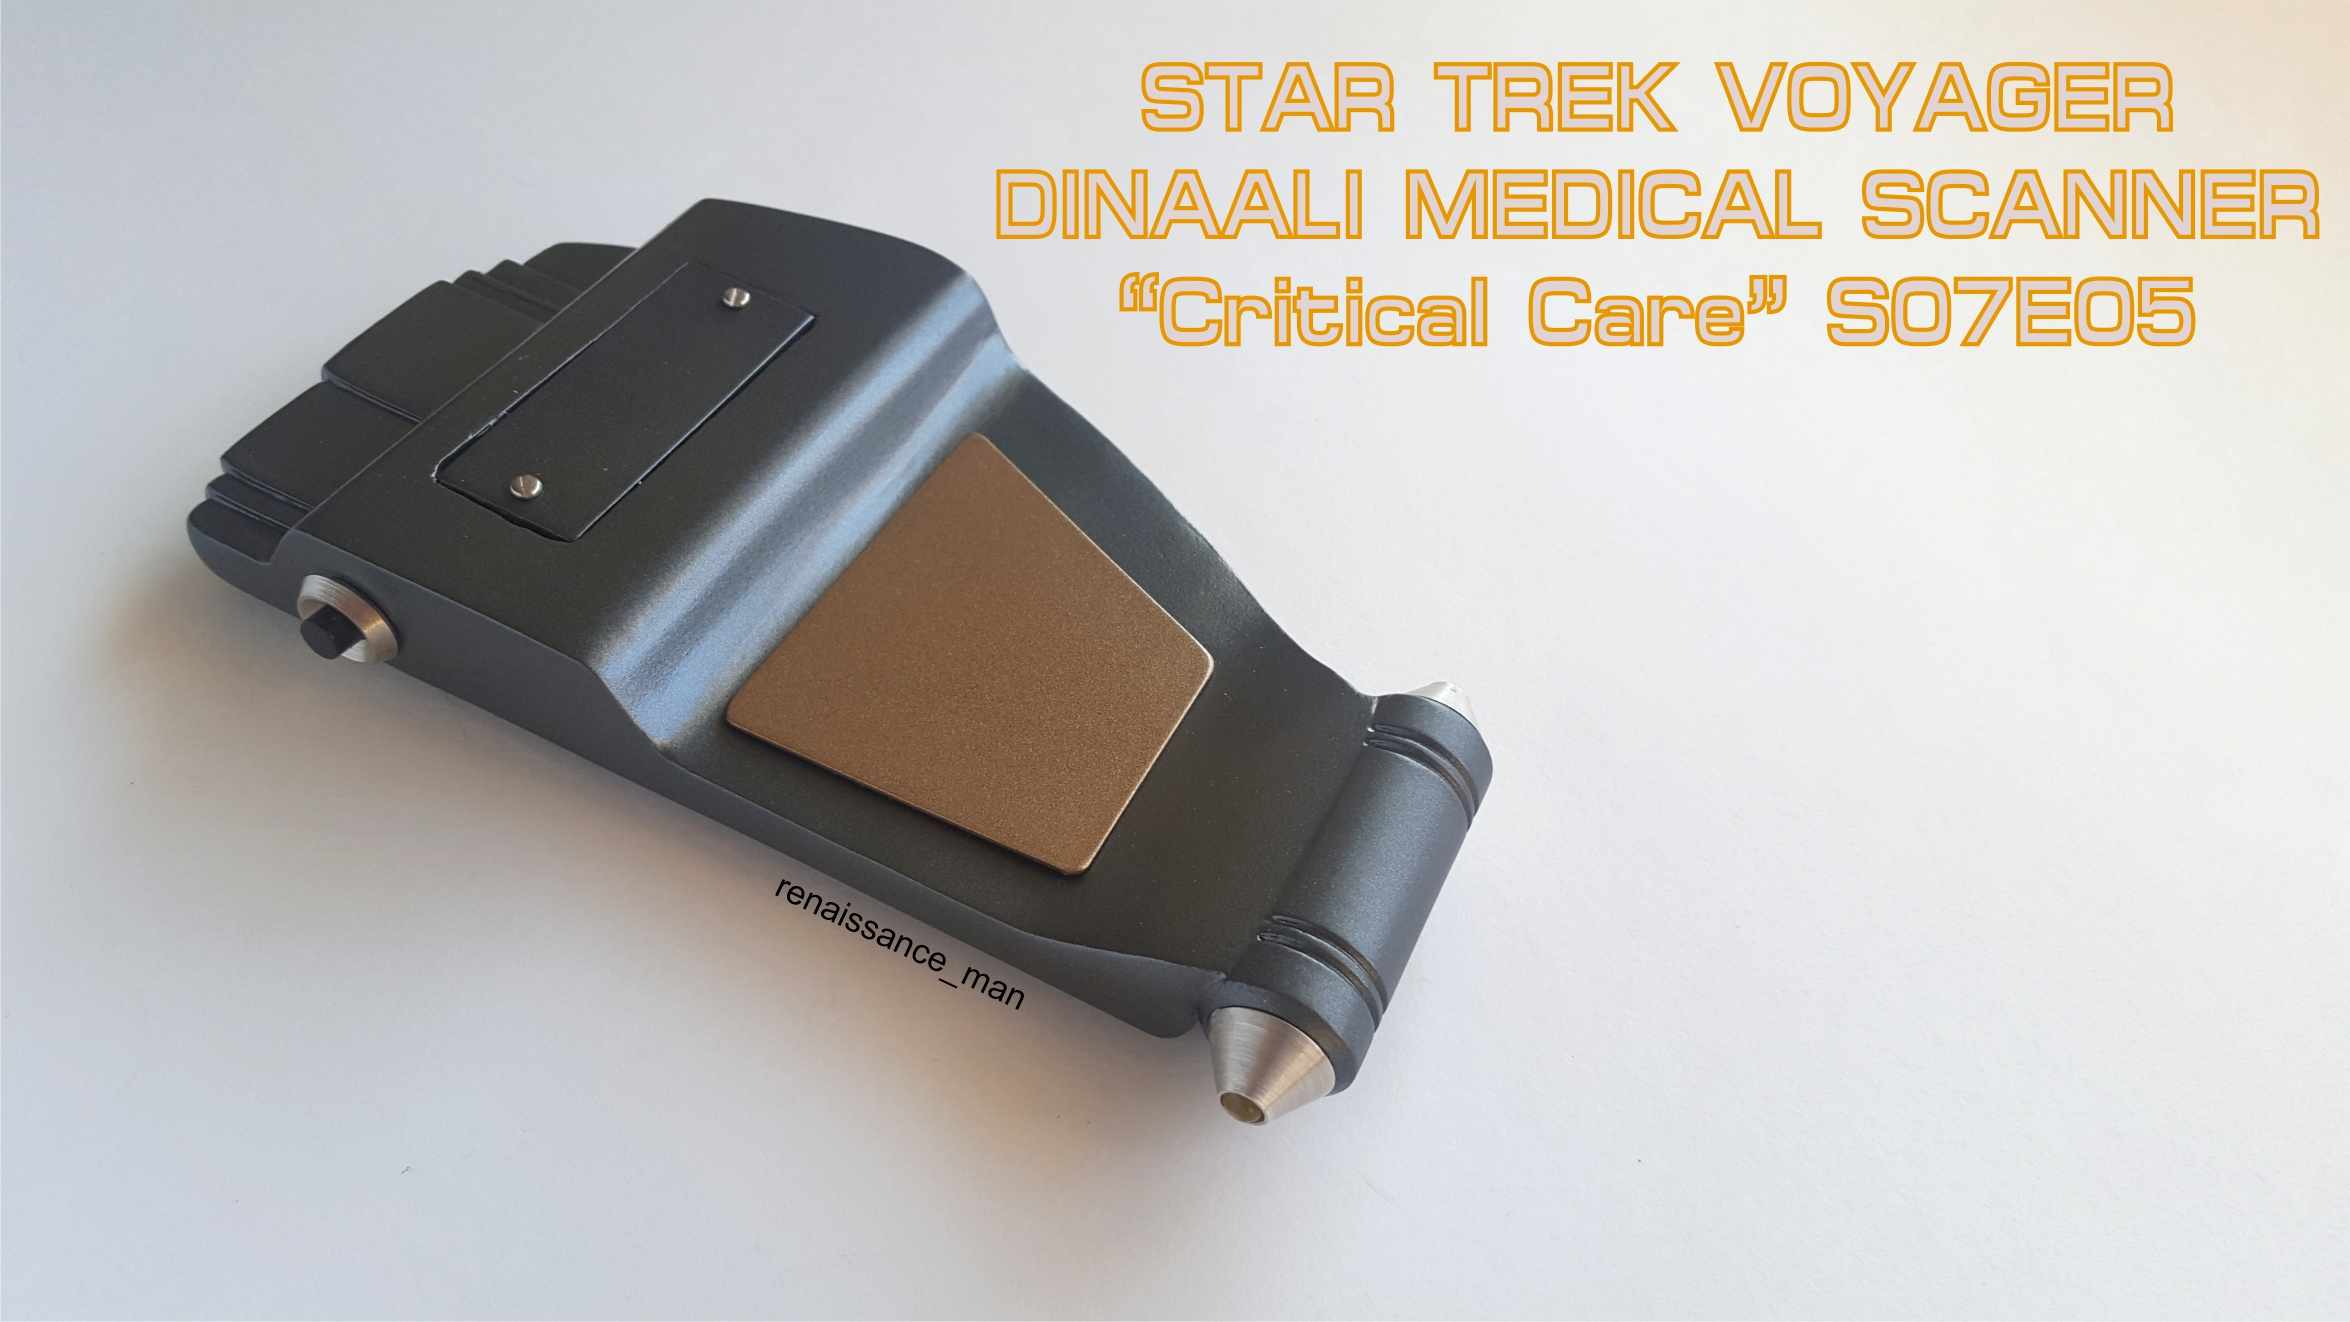 Star-Trek-VOY-Dinaali-Medical-Scanner-3.jpg